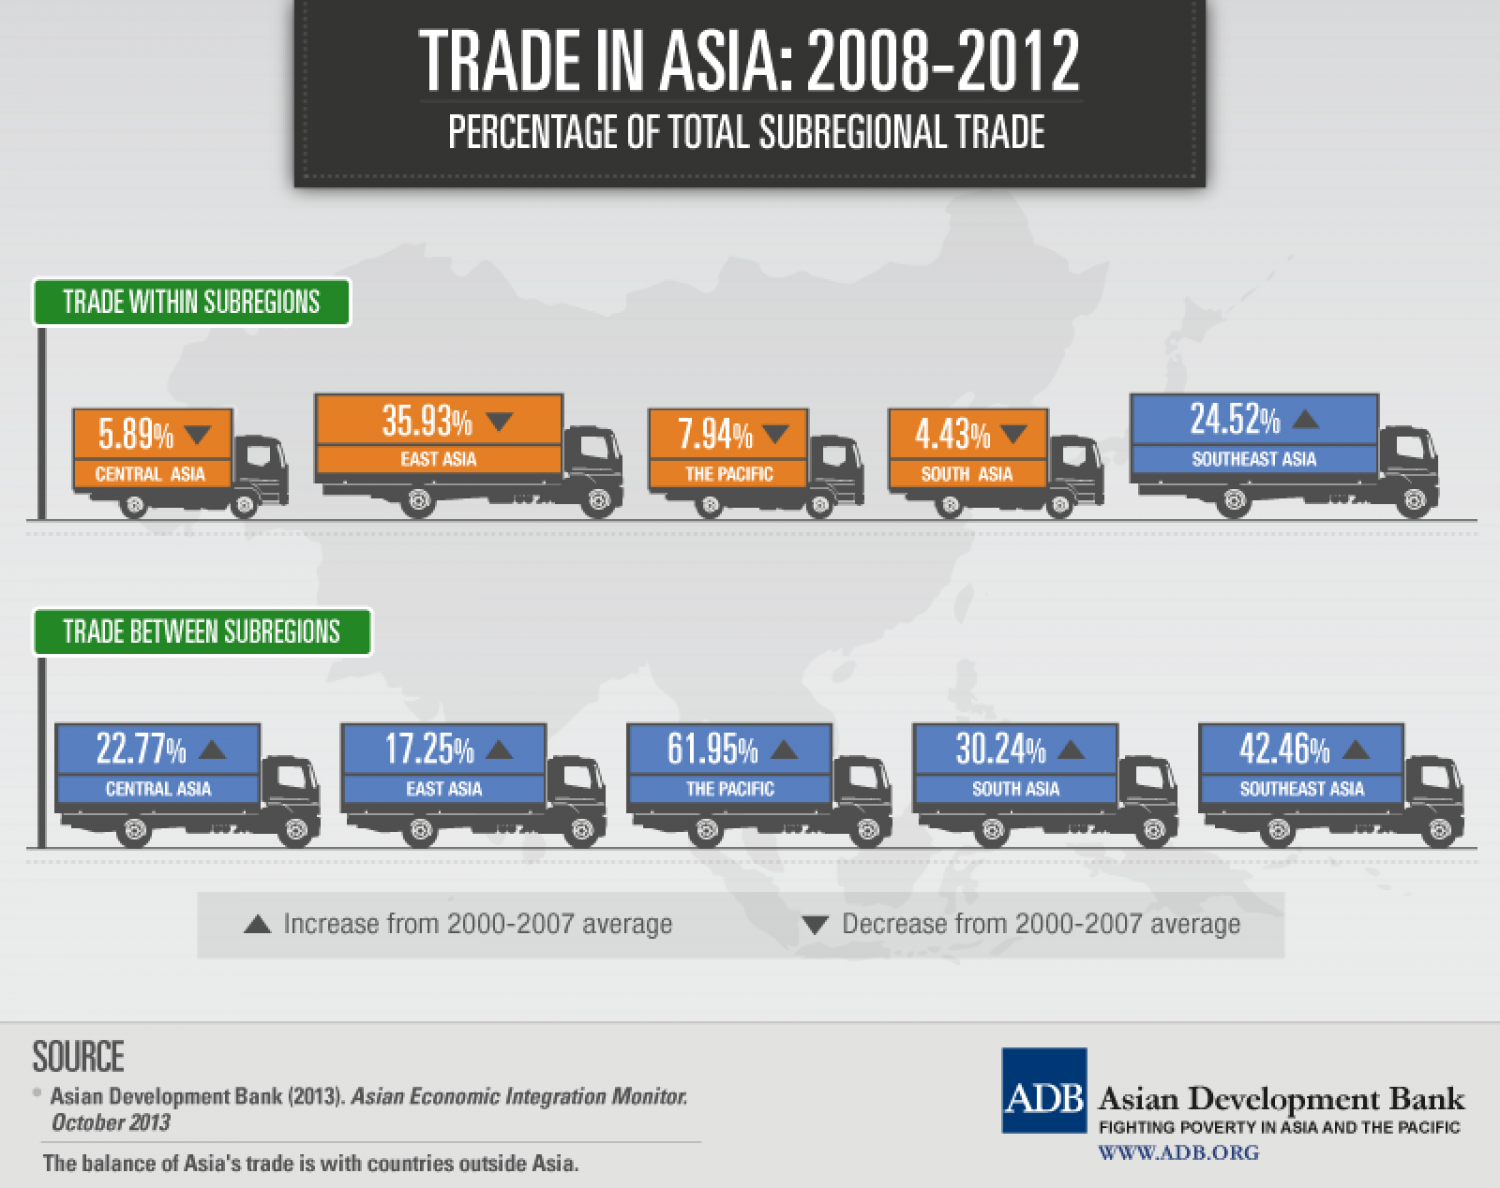 Trade in Asia: 2008-2012 Infographic